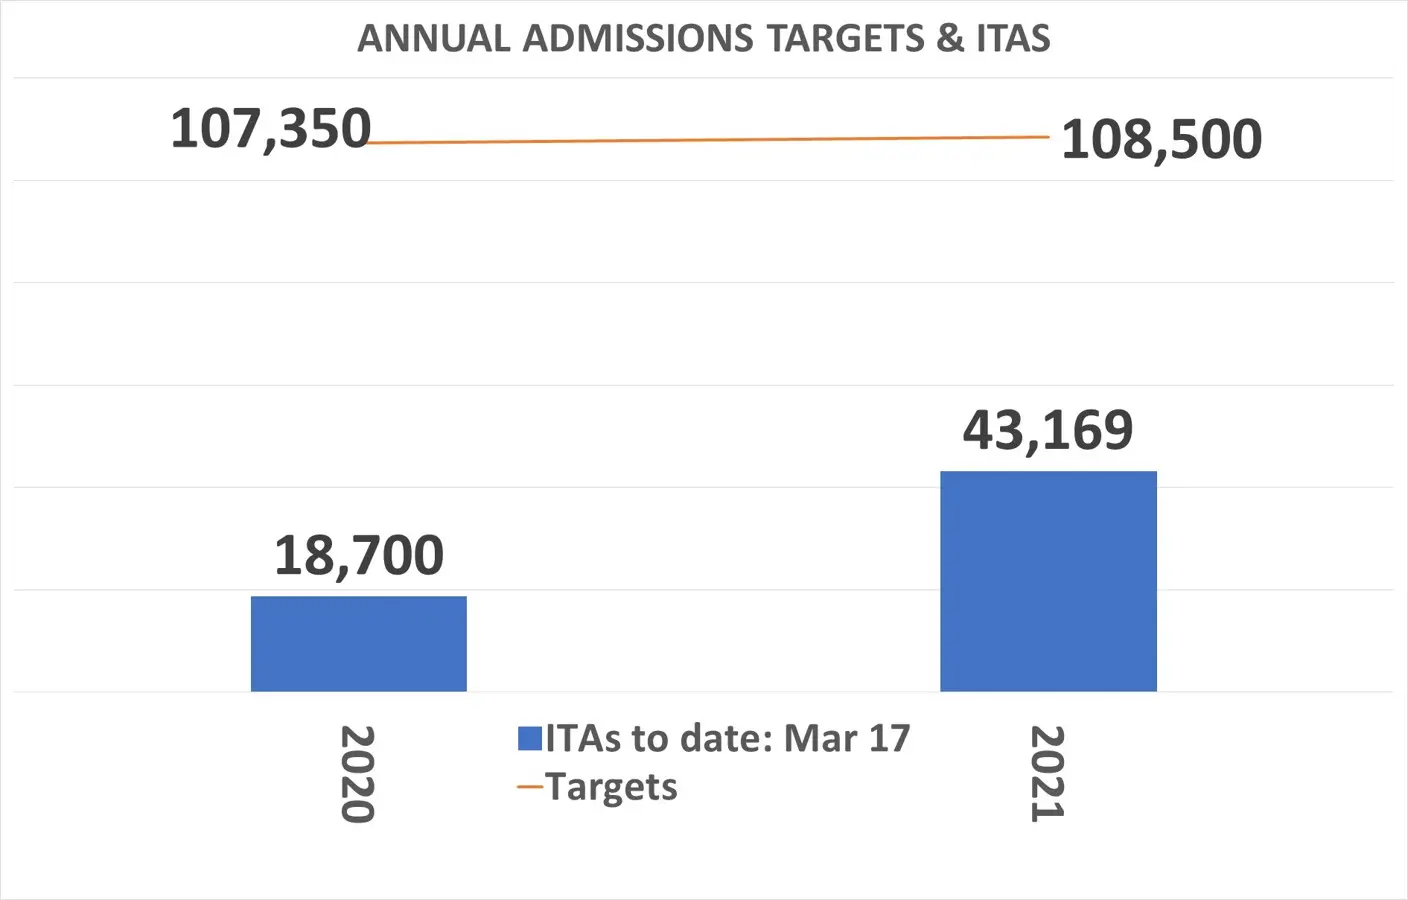 Annual Admission Targets and ITAs